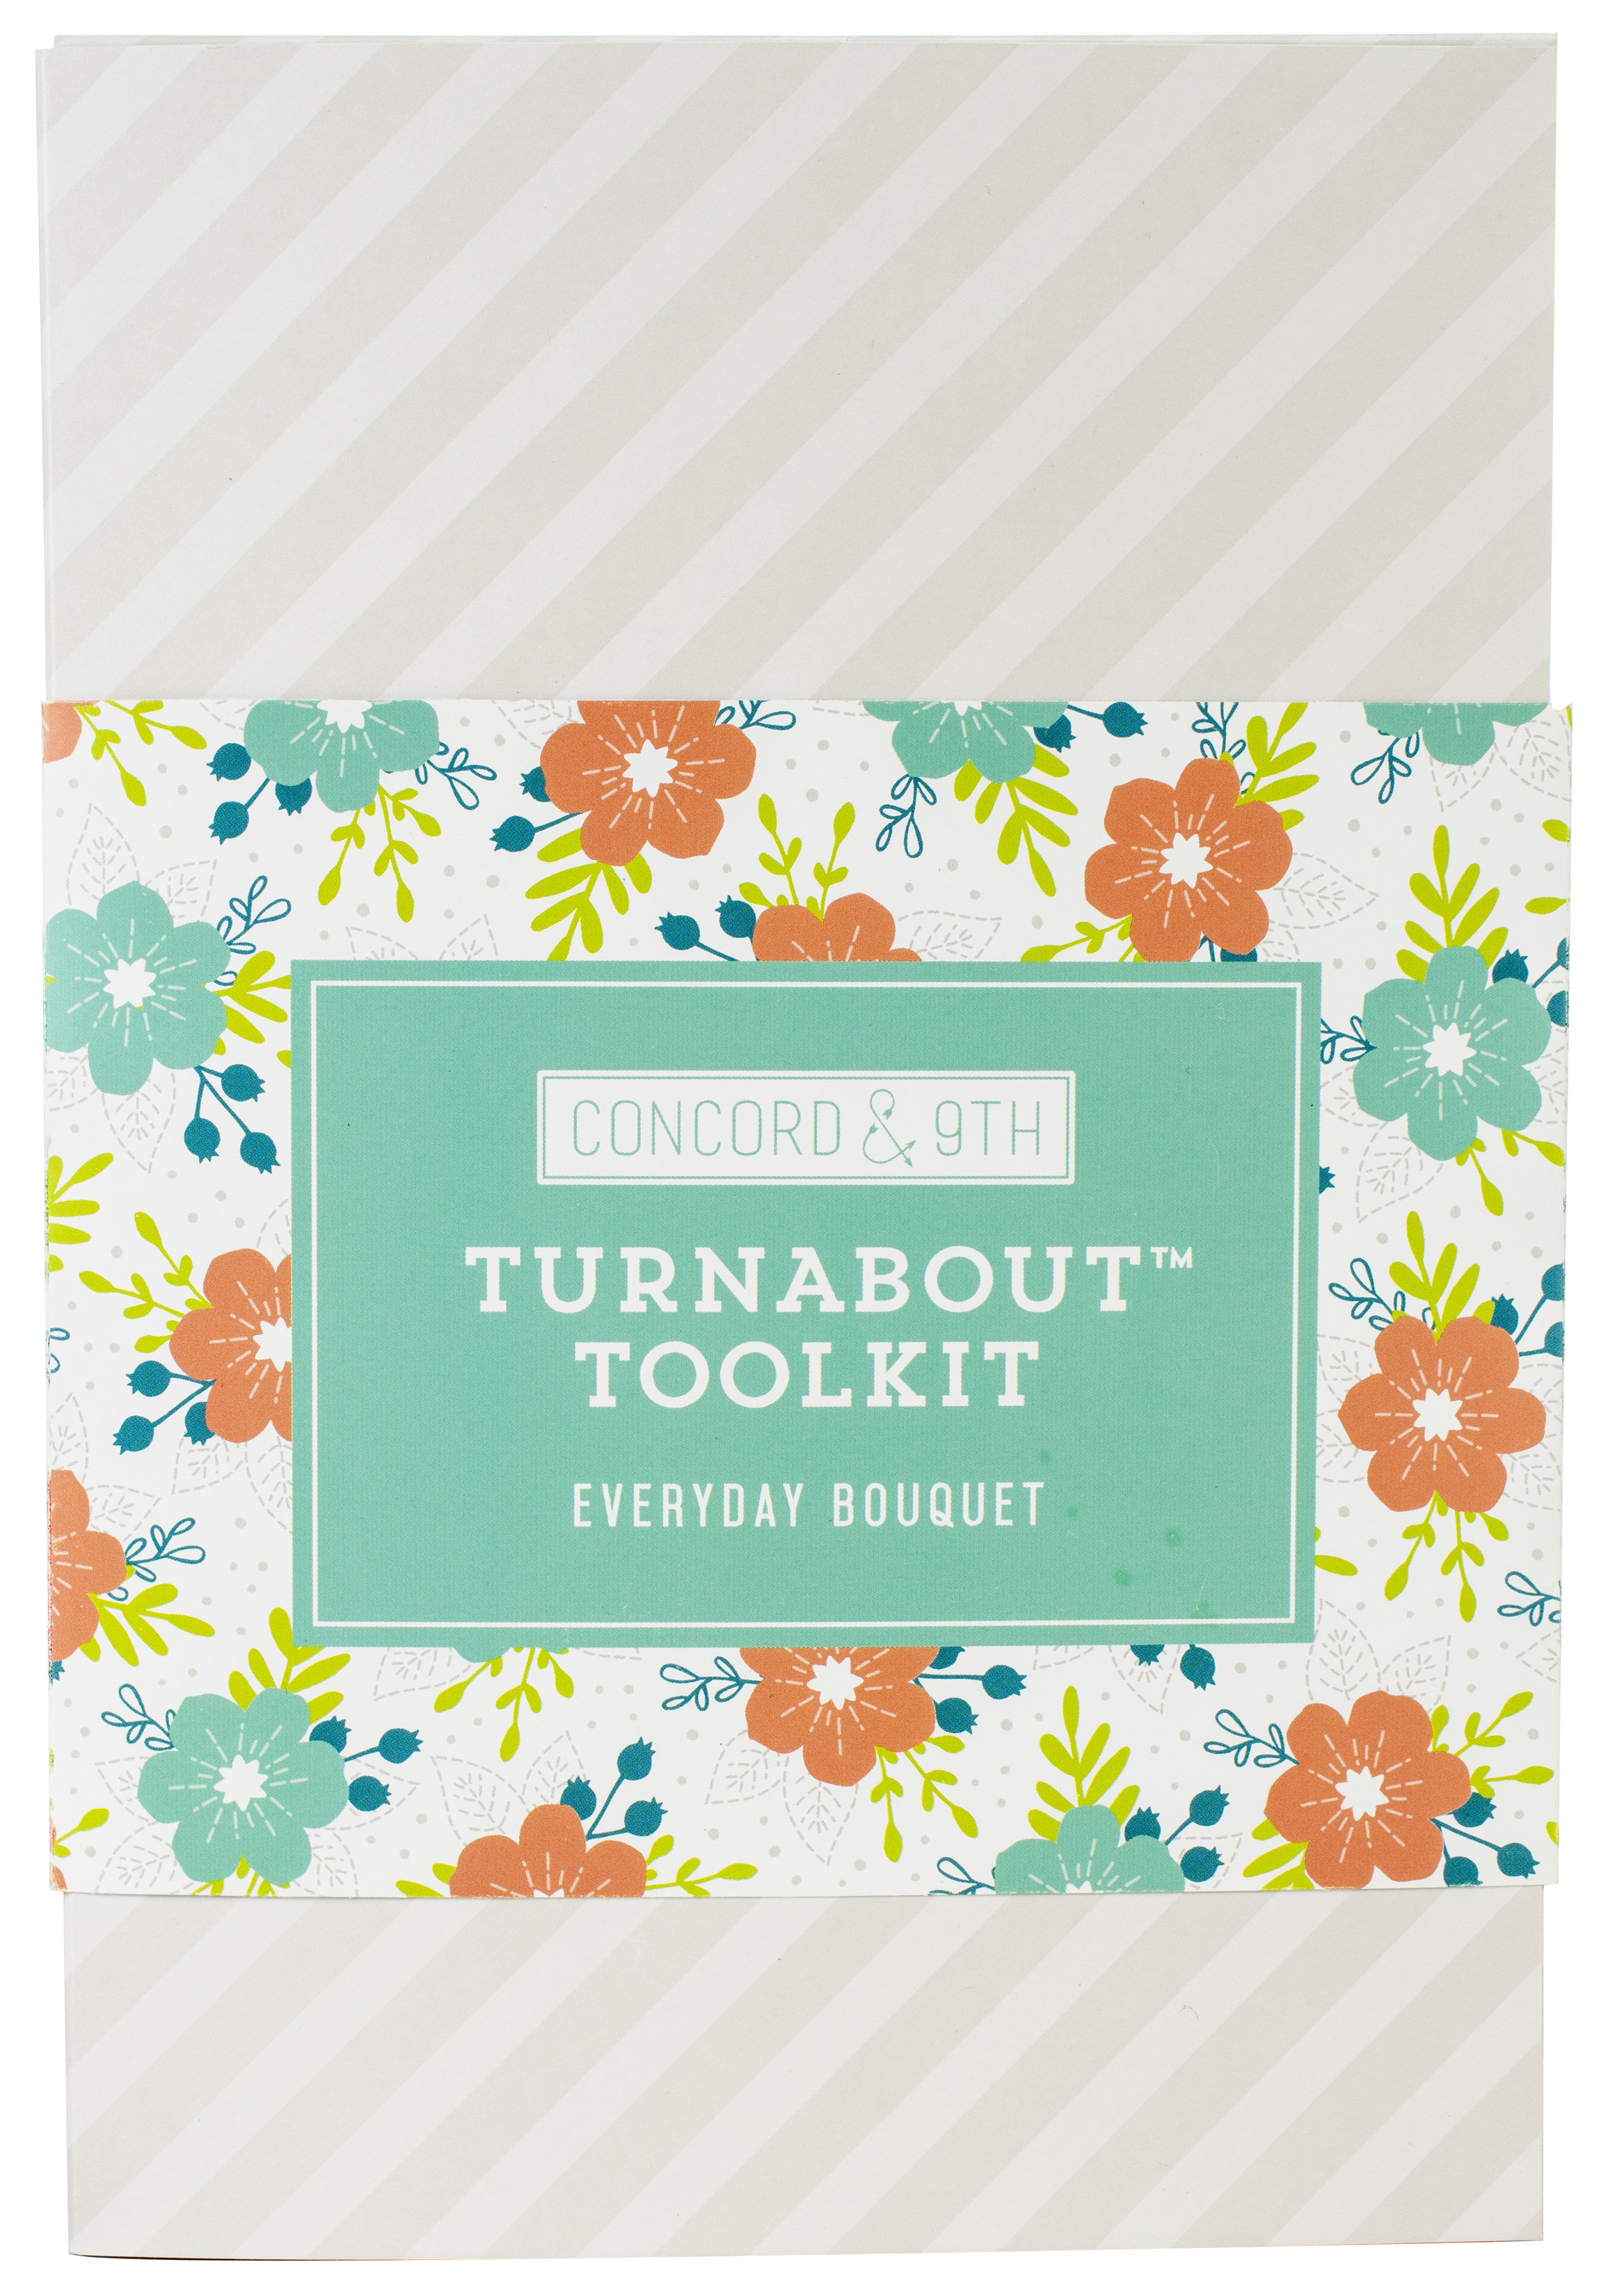 Concord & 9th Turnabout Toolkit-Everyday Bouquet